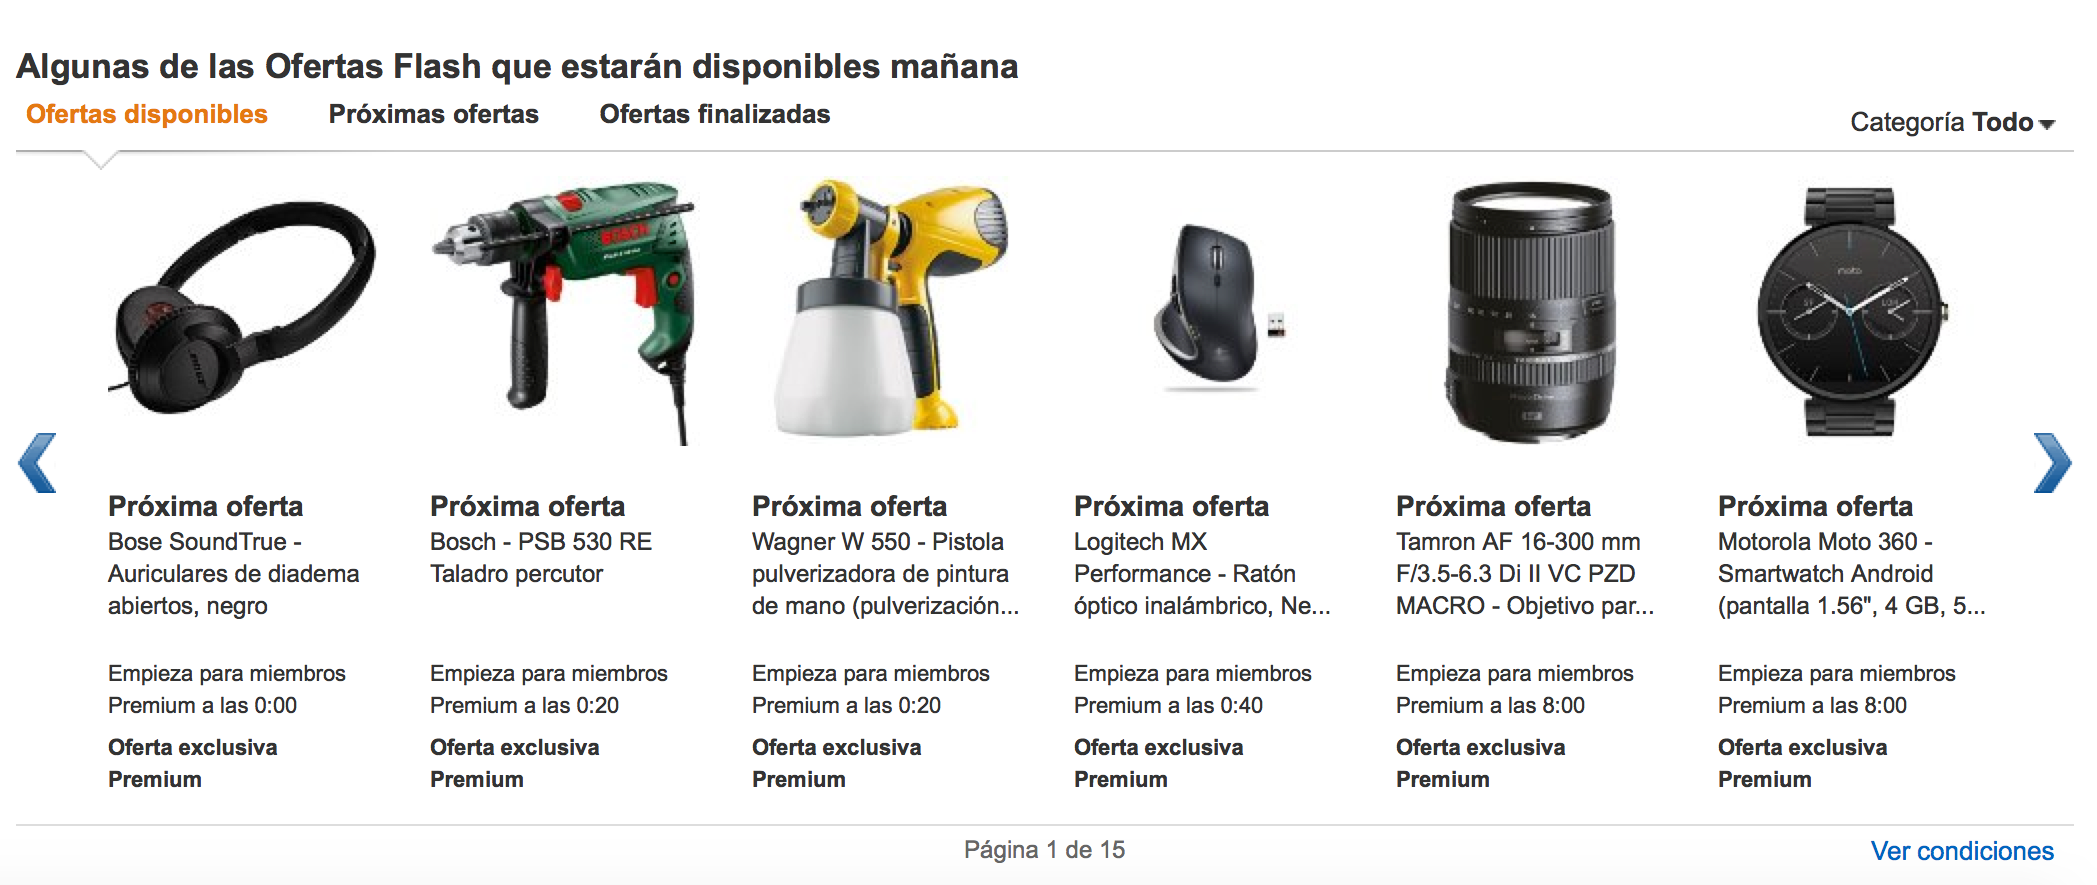 Como funciona el Amazon Premium Day